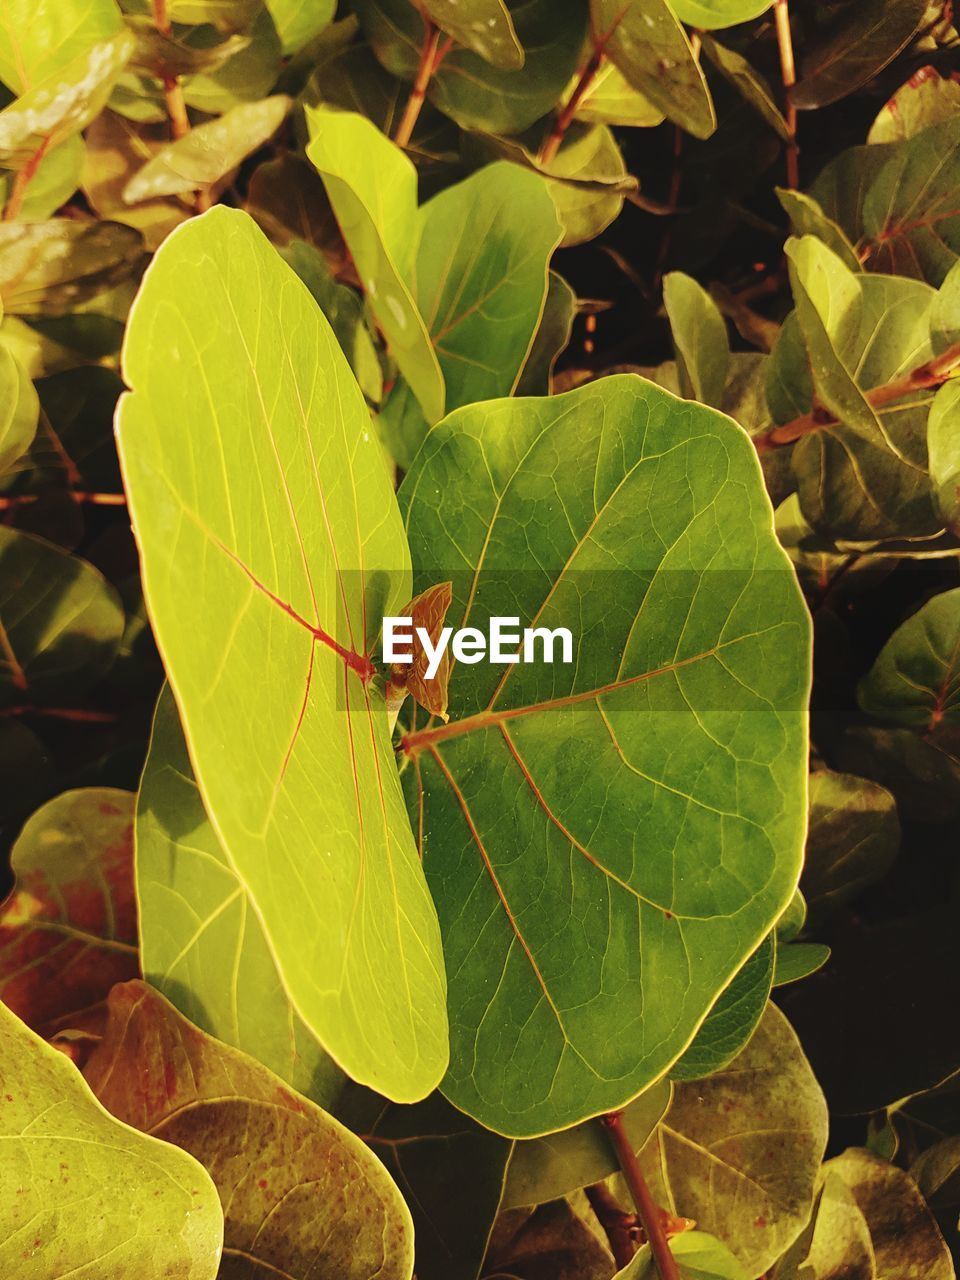 leaf, plant part, green color, growth, day, close-up, nature, plant, invertebrate, animal wildlife, insect, one animal, beauty in nature, animal, animals in the wild, no people, animal themes, leaf vein, outdoors, focus on foreground, leaves